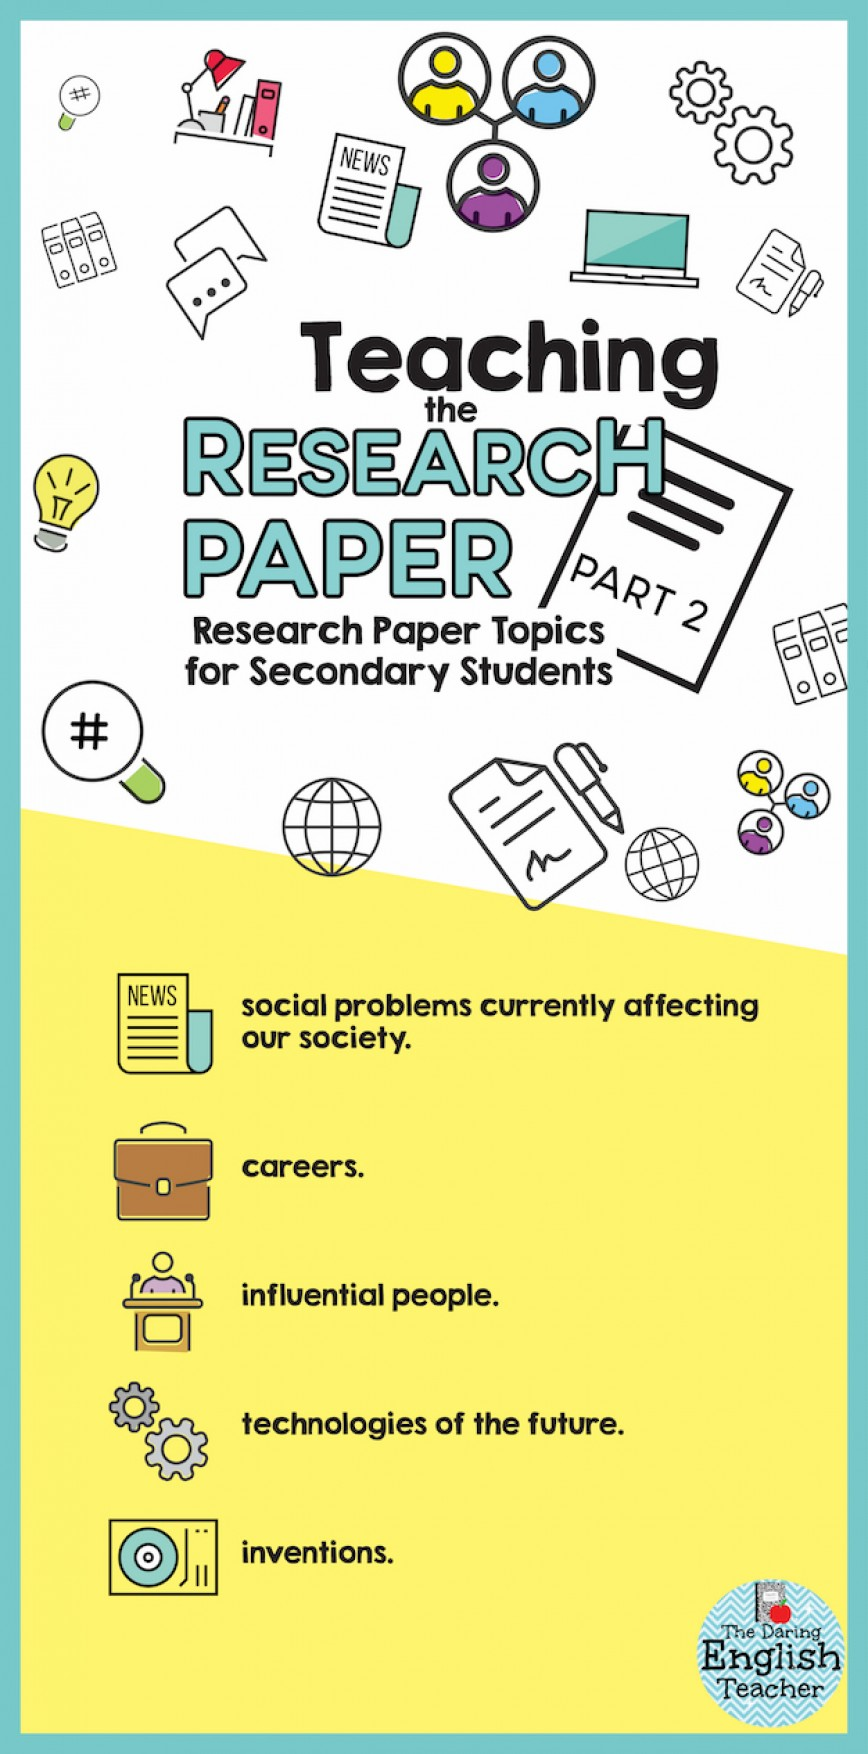 020 Infographic2bp22b2 Research Paper Topic For Unusual A Topics In Psychology List Of On Education 868